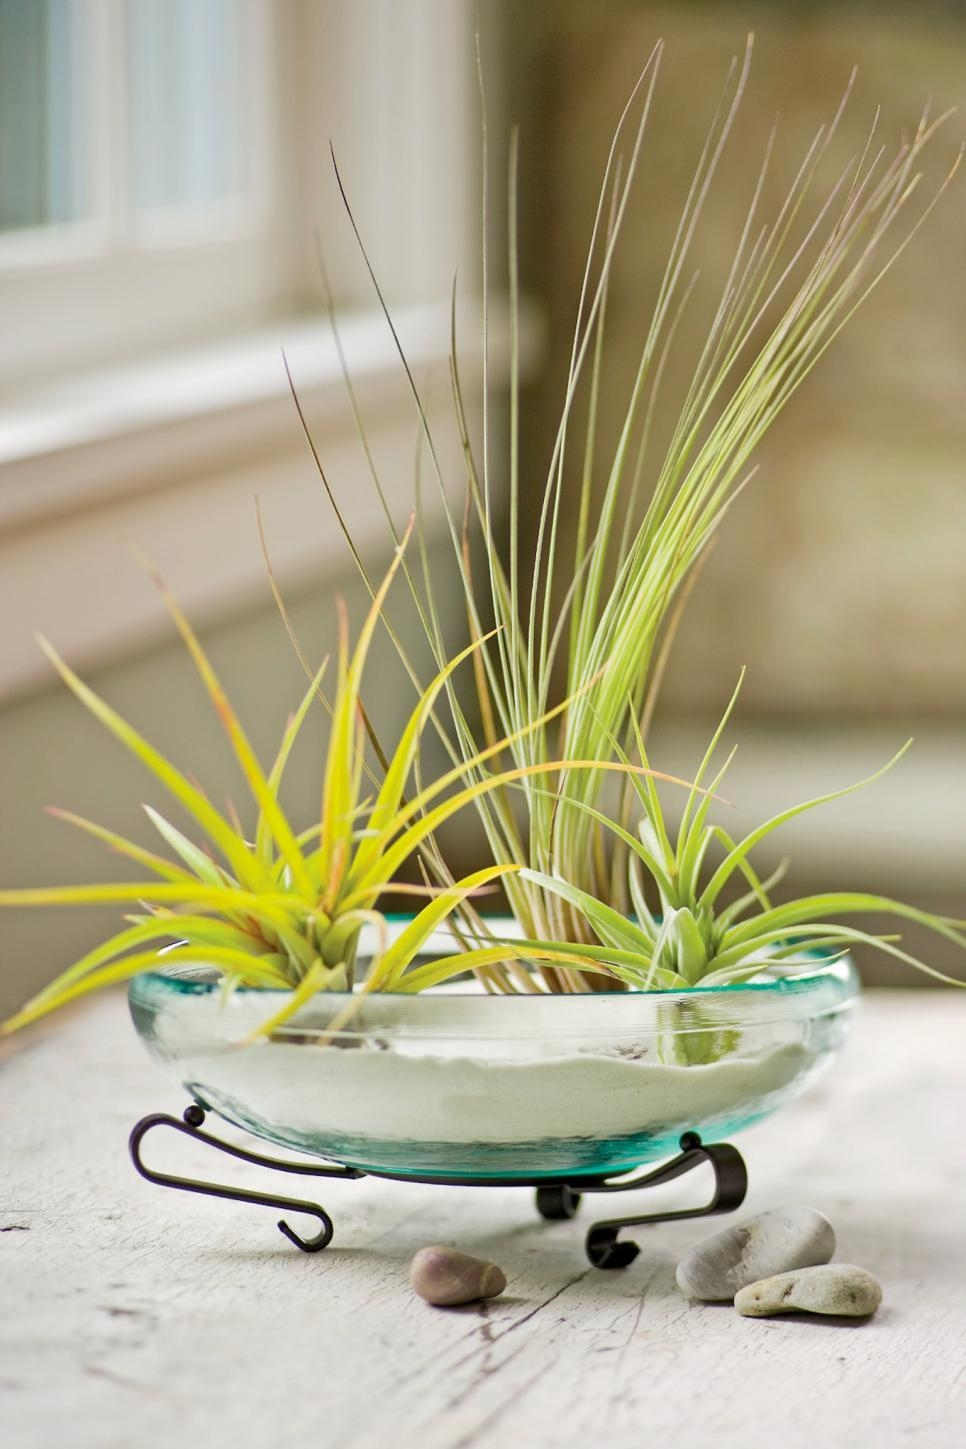 Decorating With Air Plants | Hgtv Inside Air Plant Wall Art (Image 9 of 20)